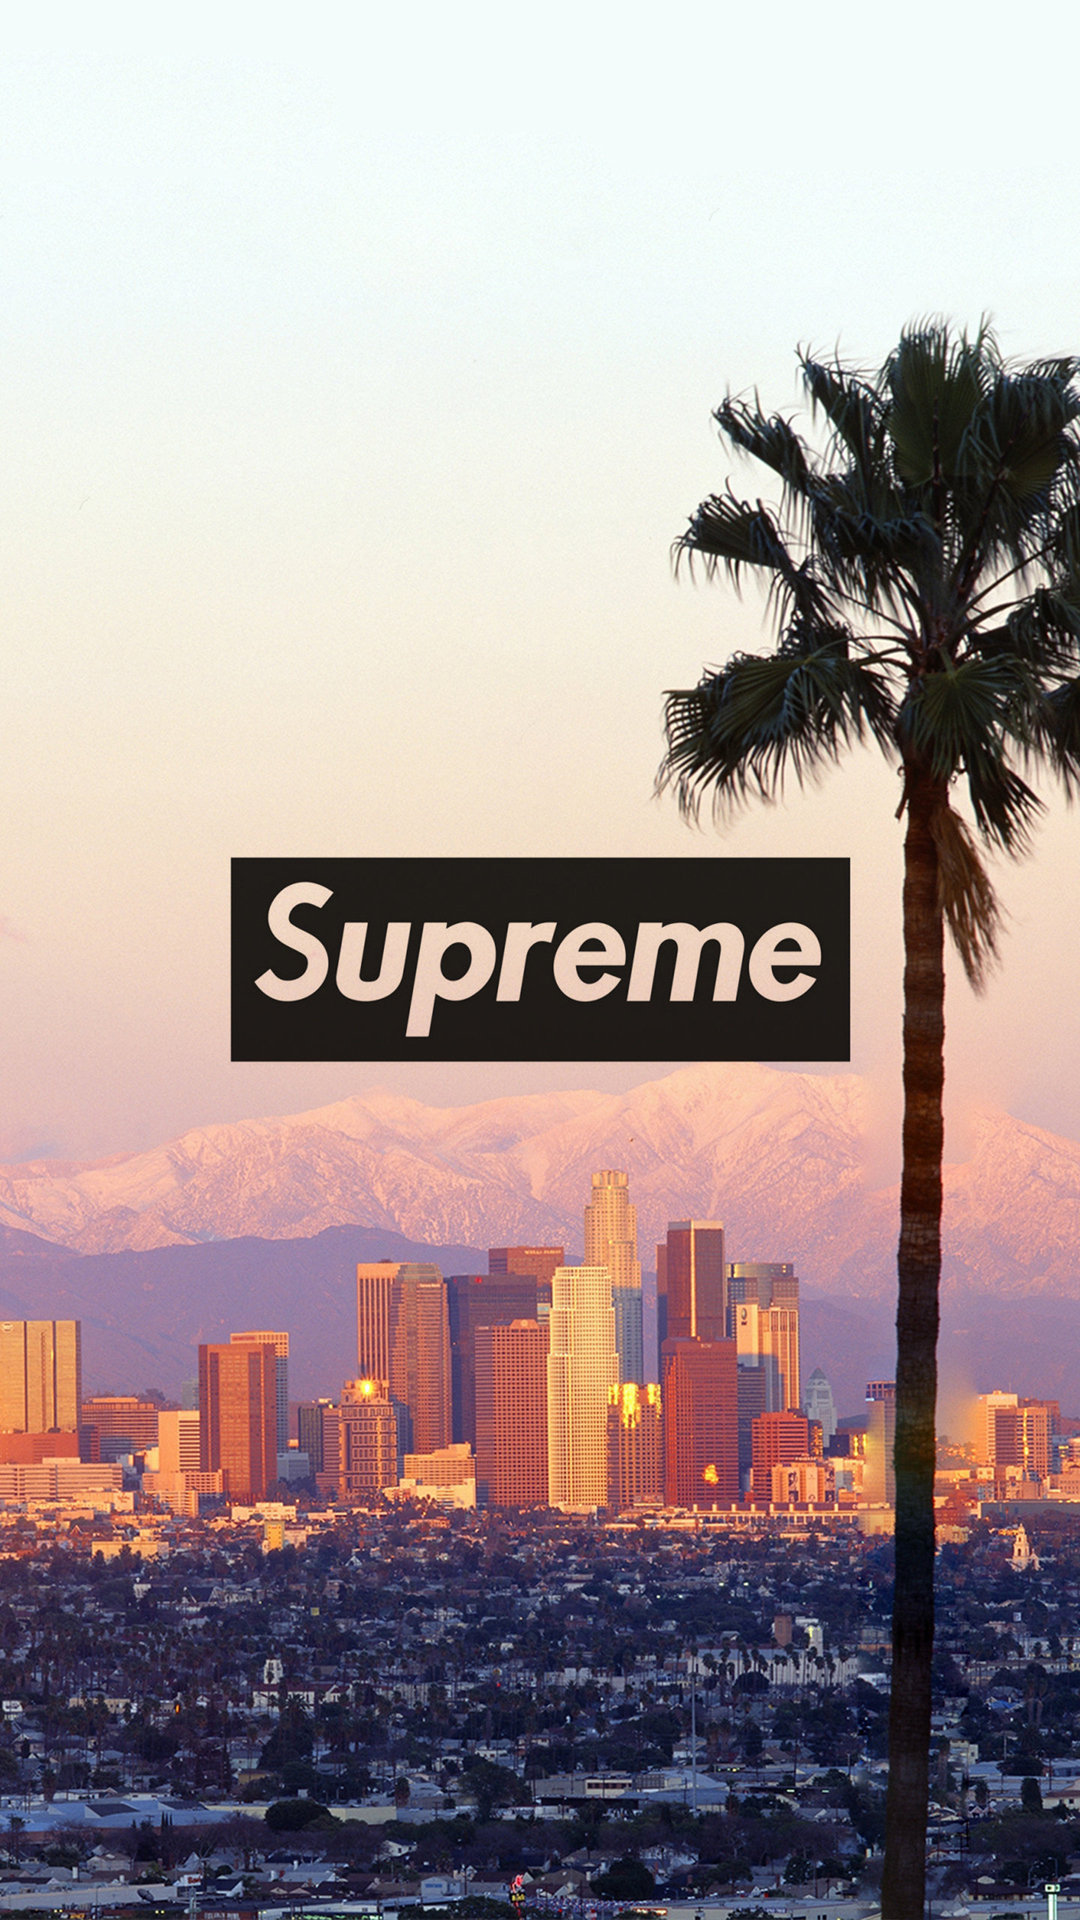 Supreme Hd Wallpaper   impremedianet 1080x1920